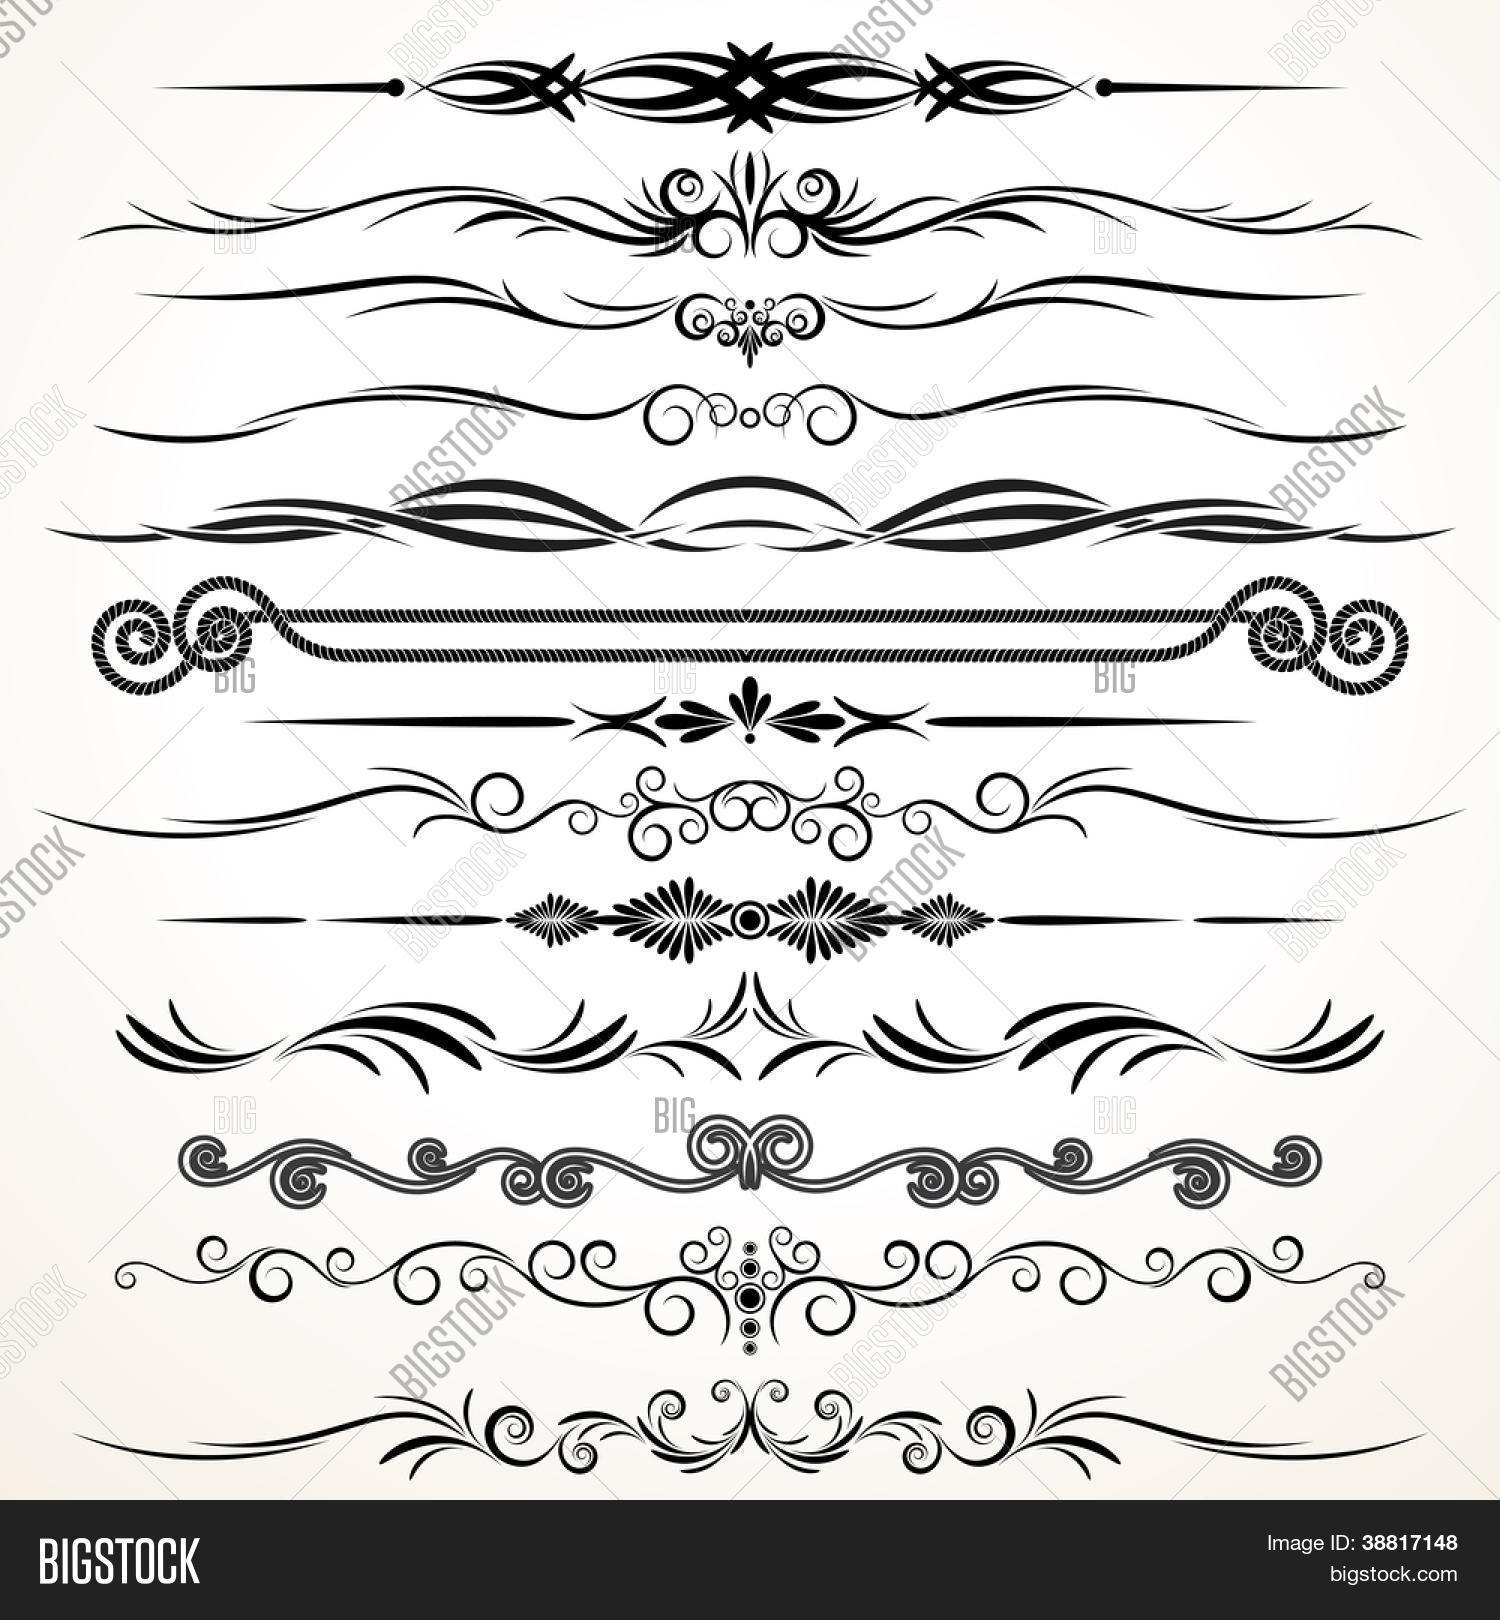 Ornamental Design Elements Ornamental Lines To Embellish